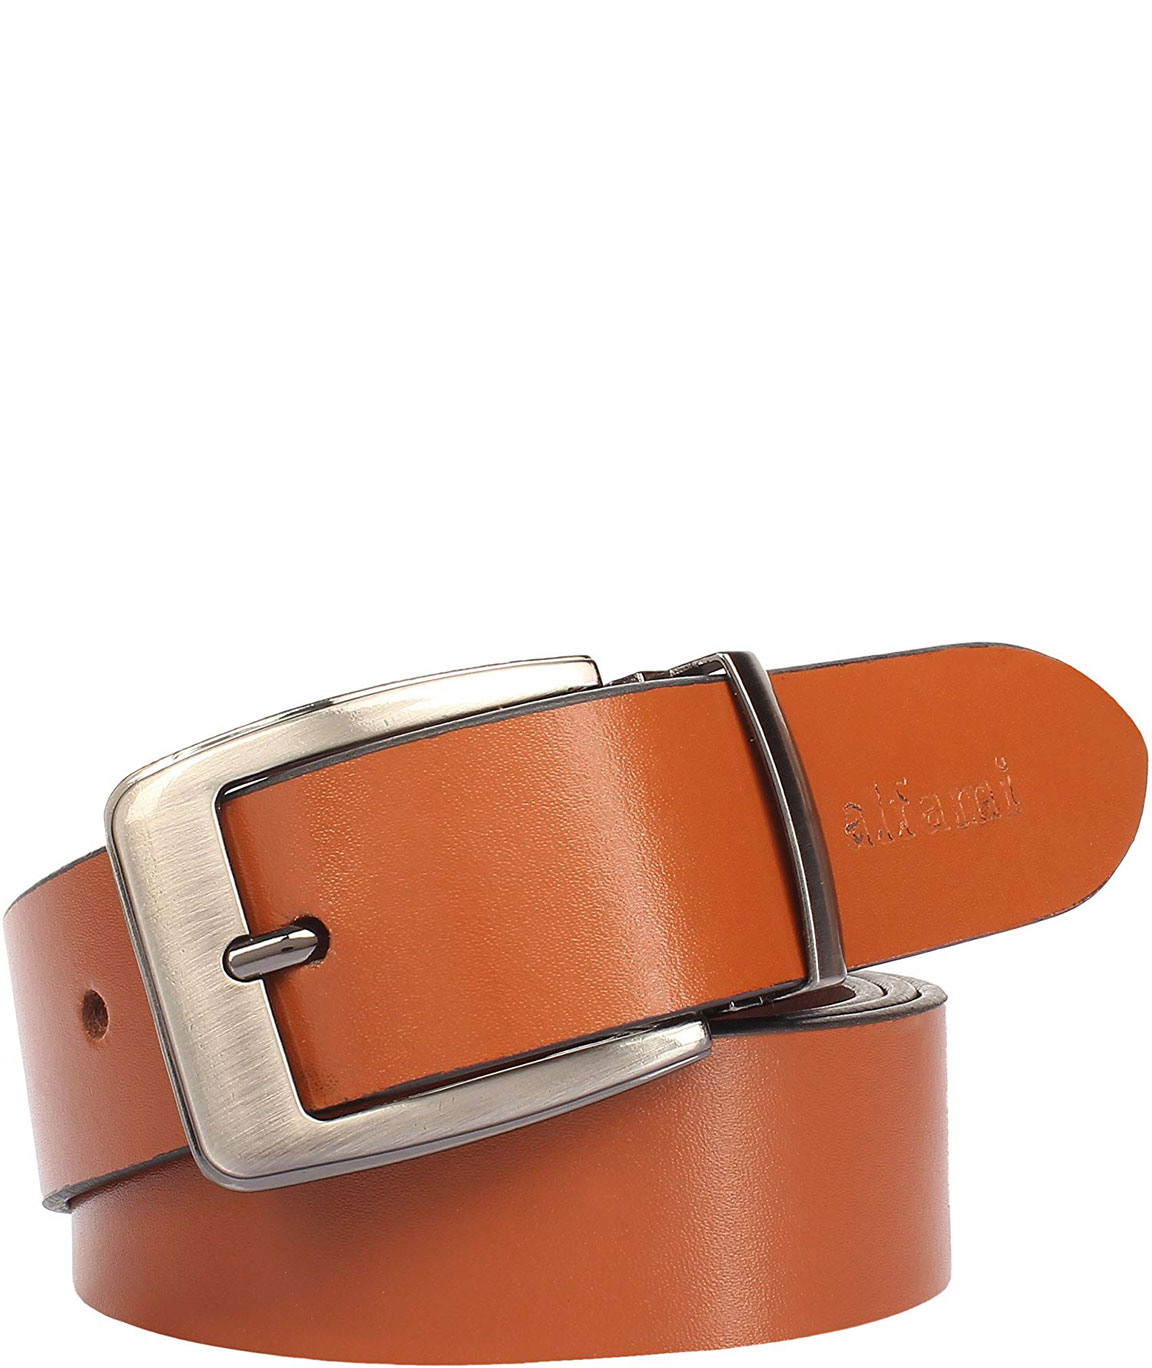 Alfami Mens Genuine Leather Belt Brown/Tan Colour All Sizes Timber Pattern